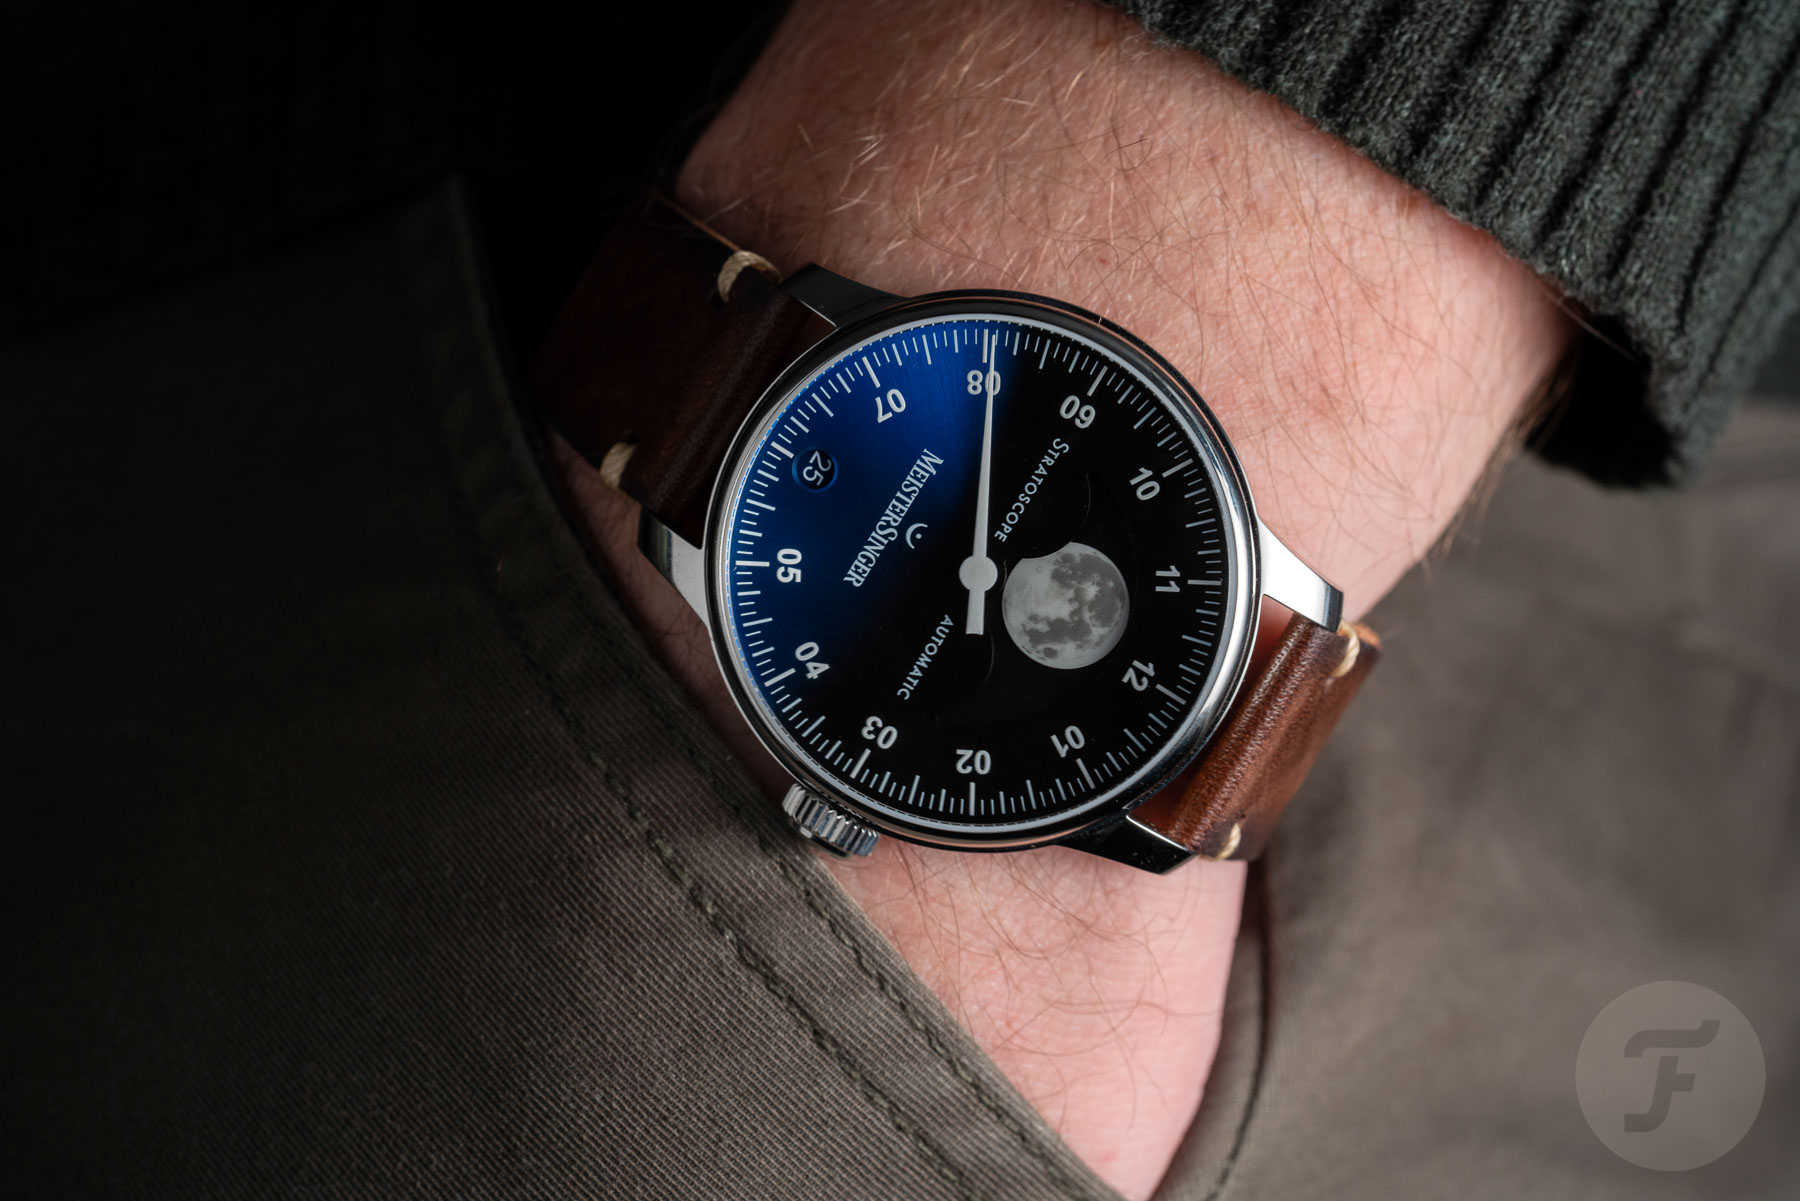 Hands-On With The New Meistersinger Stratoscope Moonphase Watch